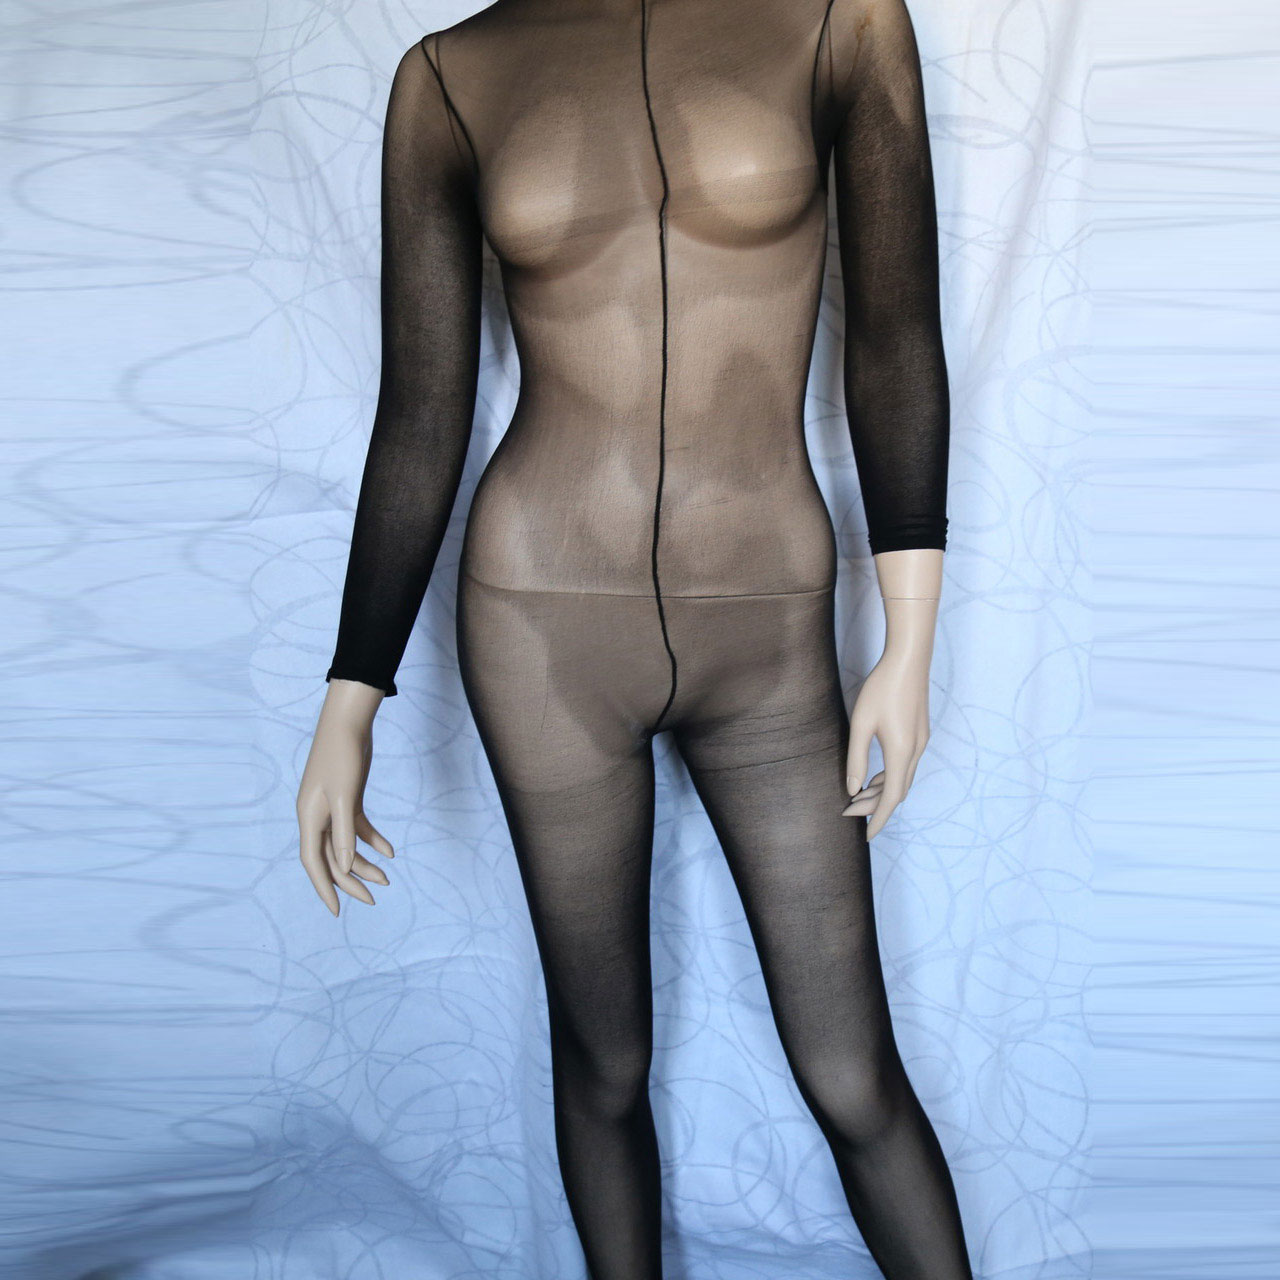 Full body stocking pantyhose